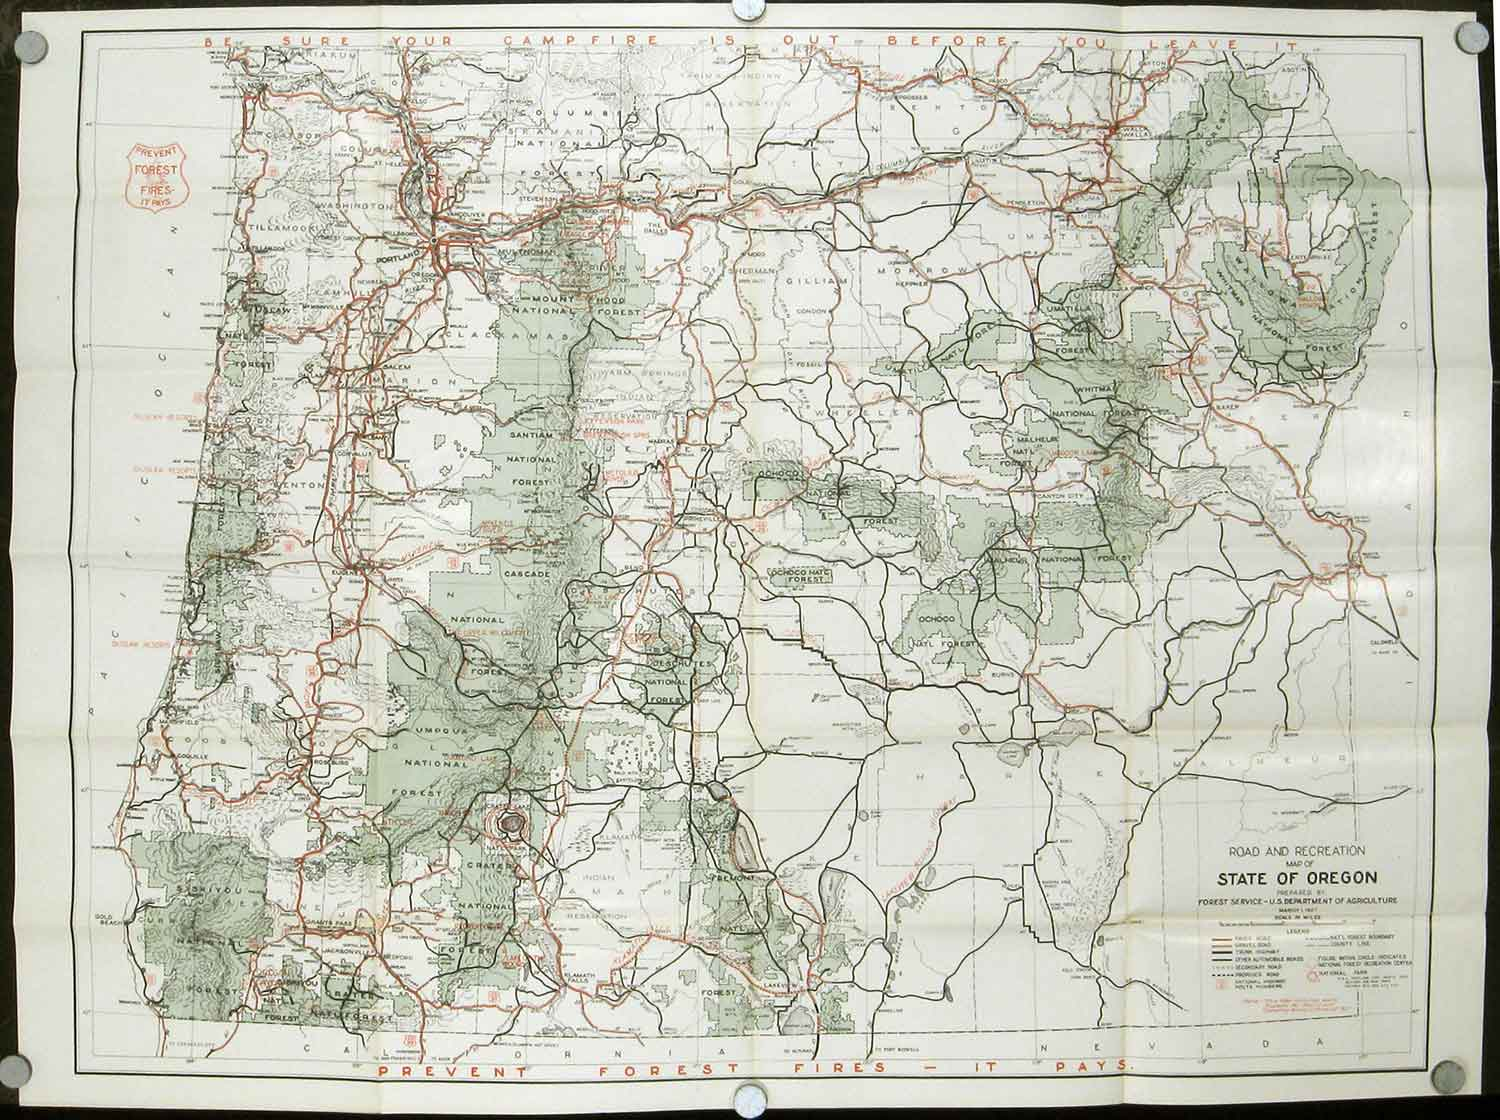 Road And Information Map For The National Forests Of Oregon US - Agriculture by state us map